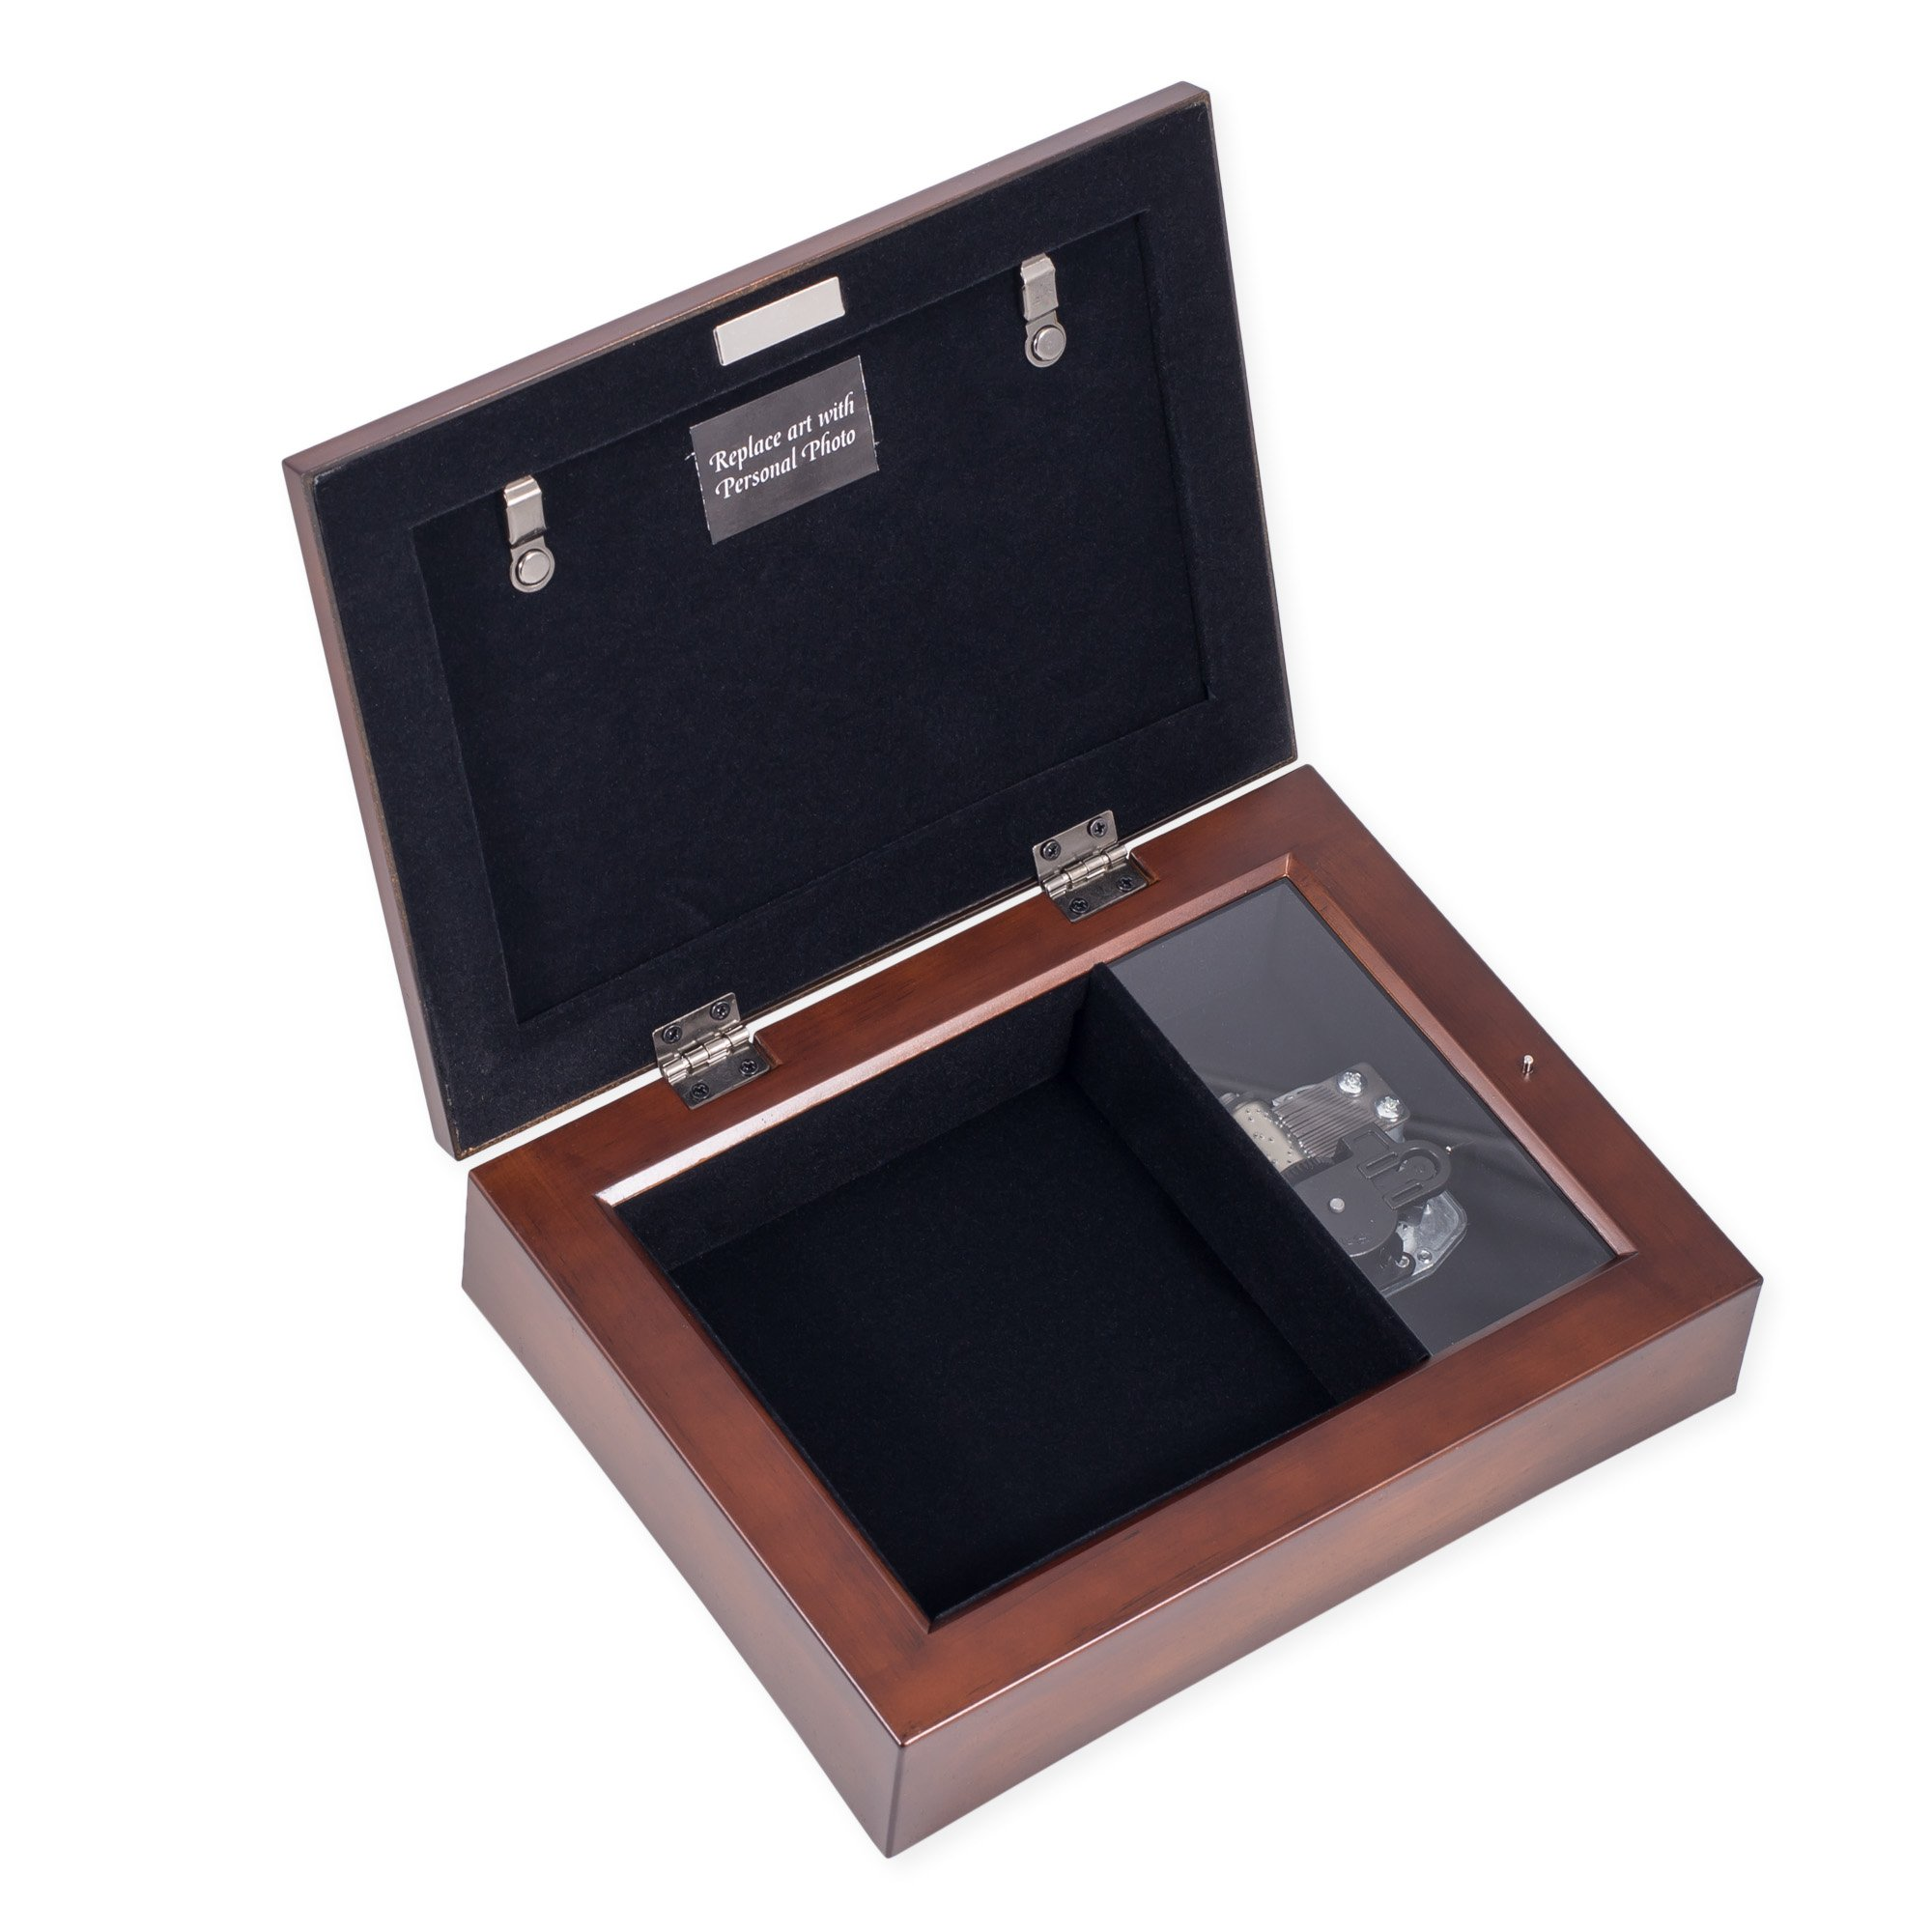 Friendship Life's Gifts Jewel Musical Music Jewelry Box with Dark Wood Finish Plays That's What Friends Are For by Cottage Garden (Image #5)